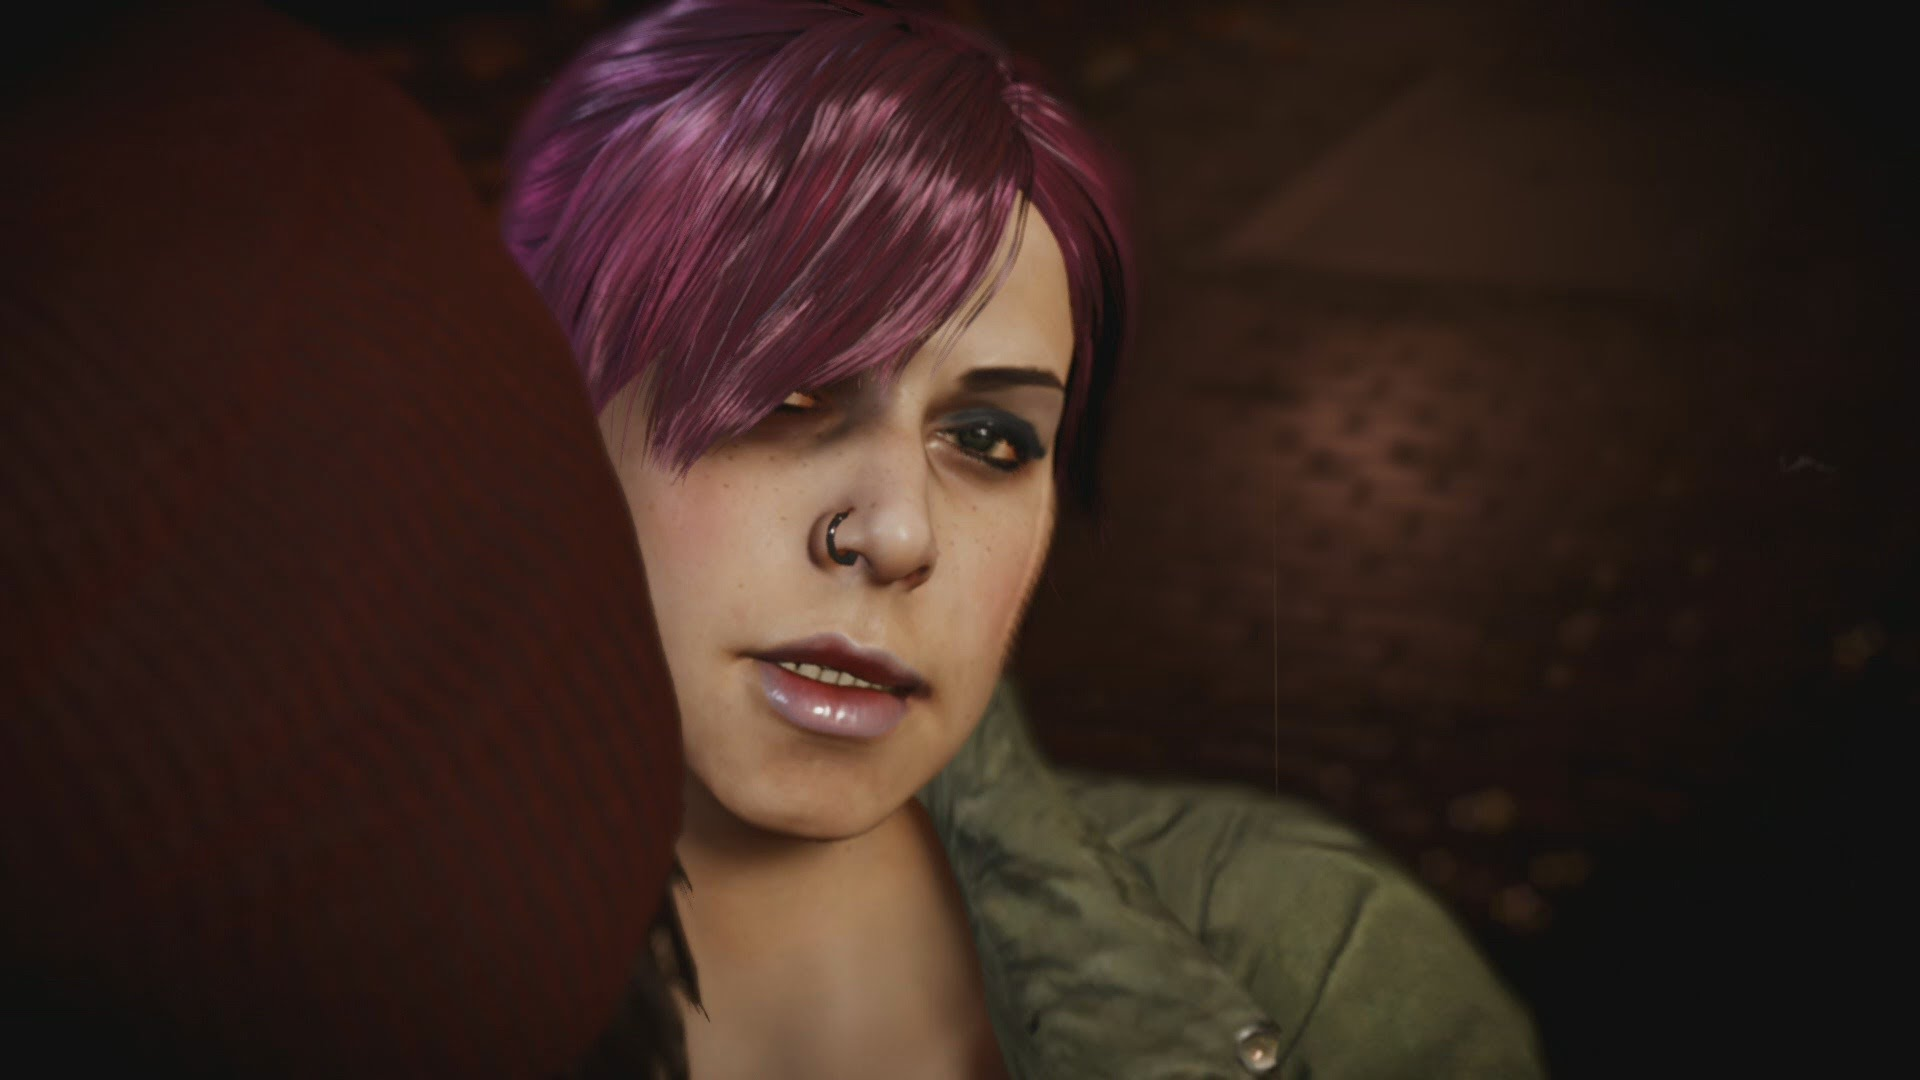 maxresdefault.jpg - inFamous: Second Son